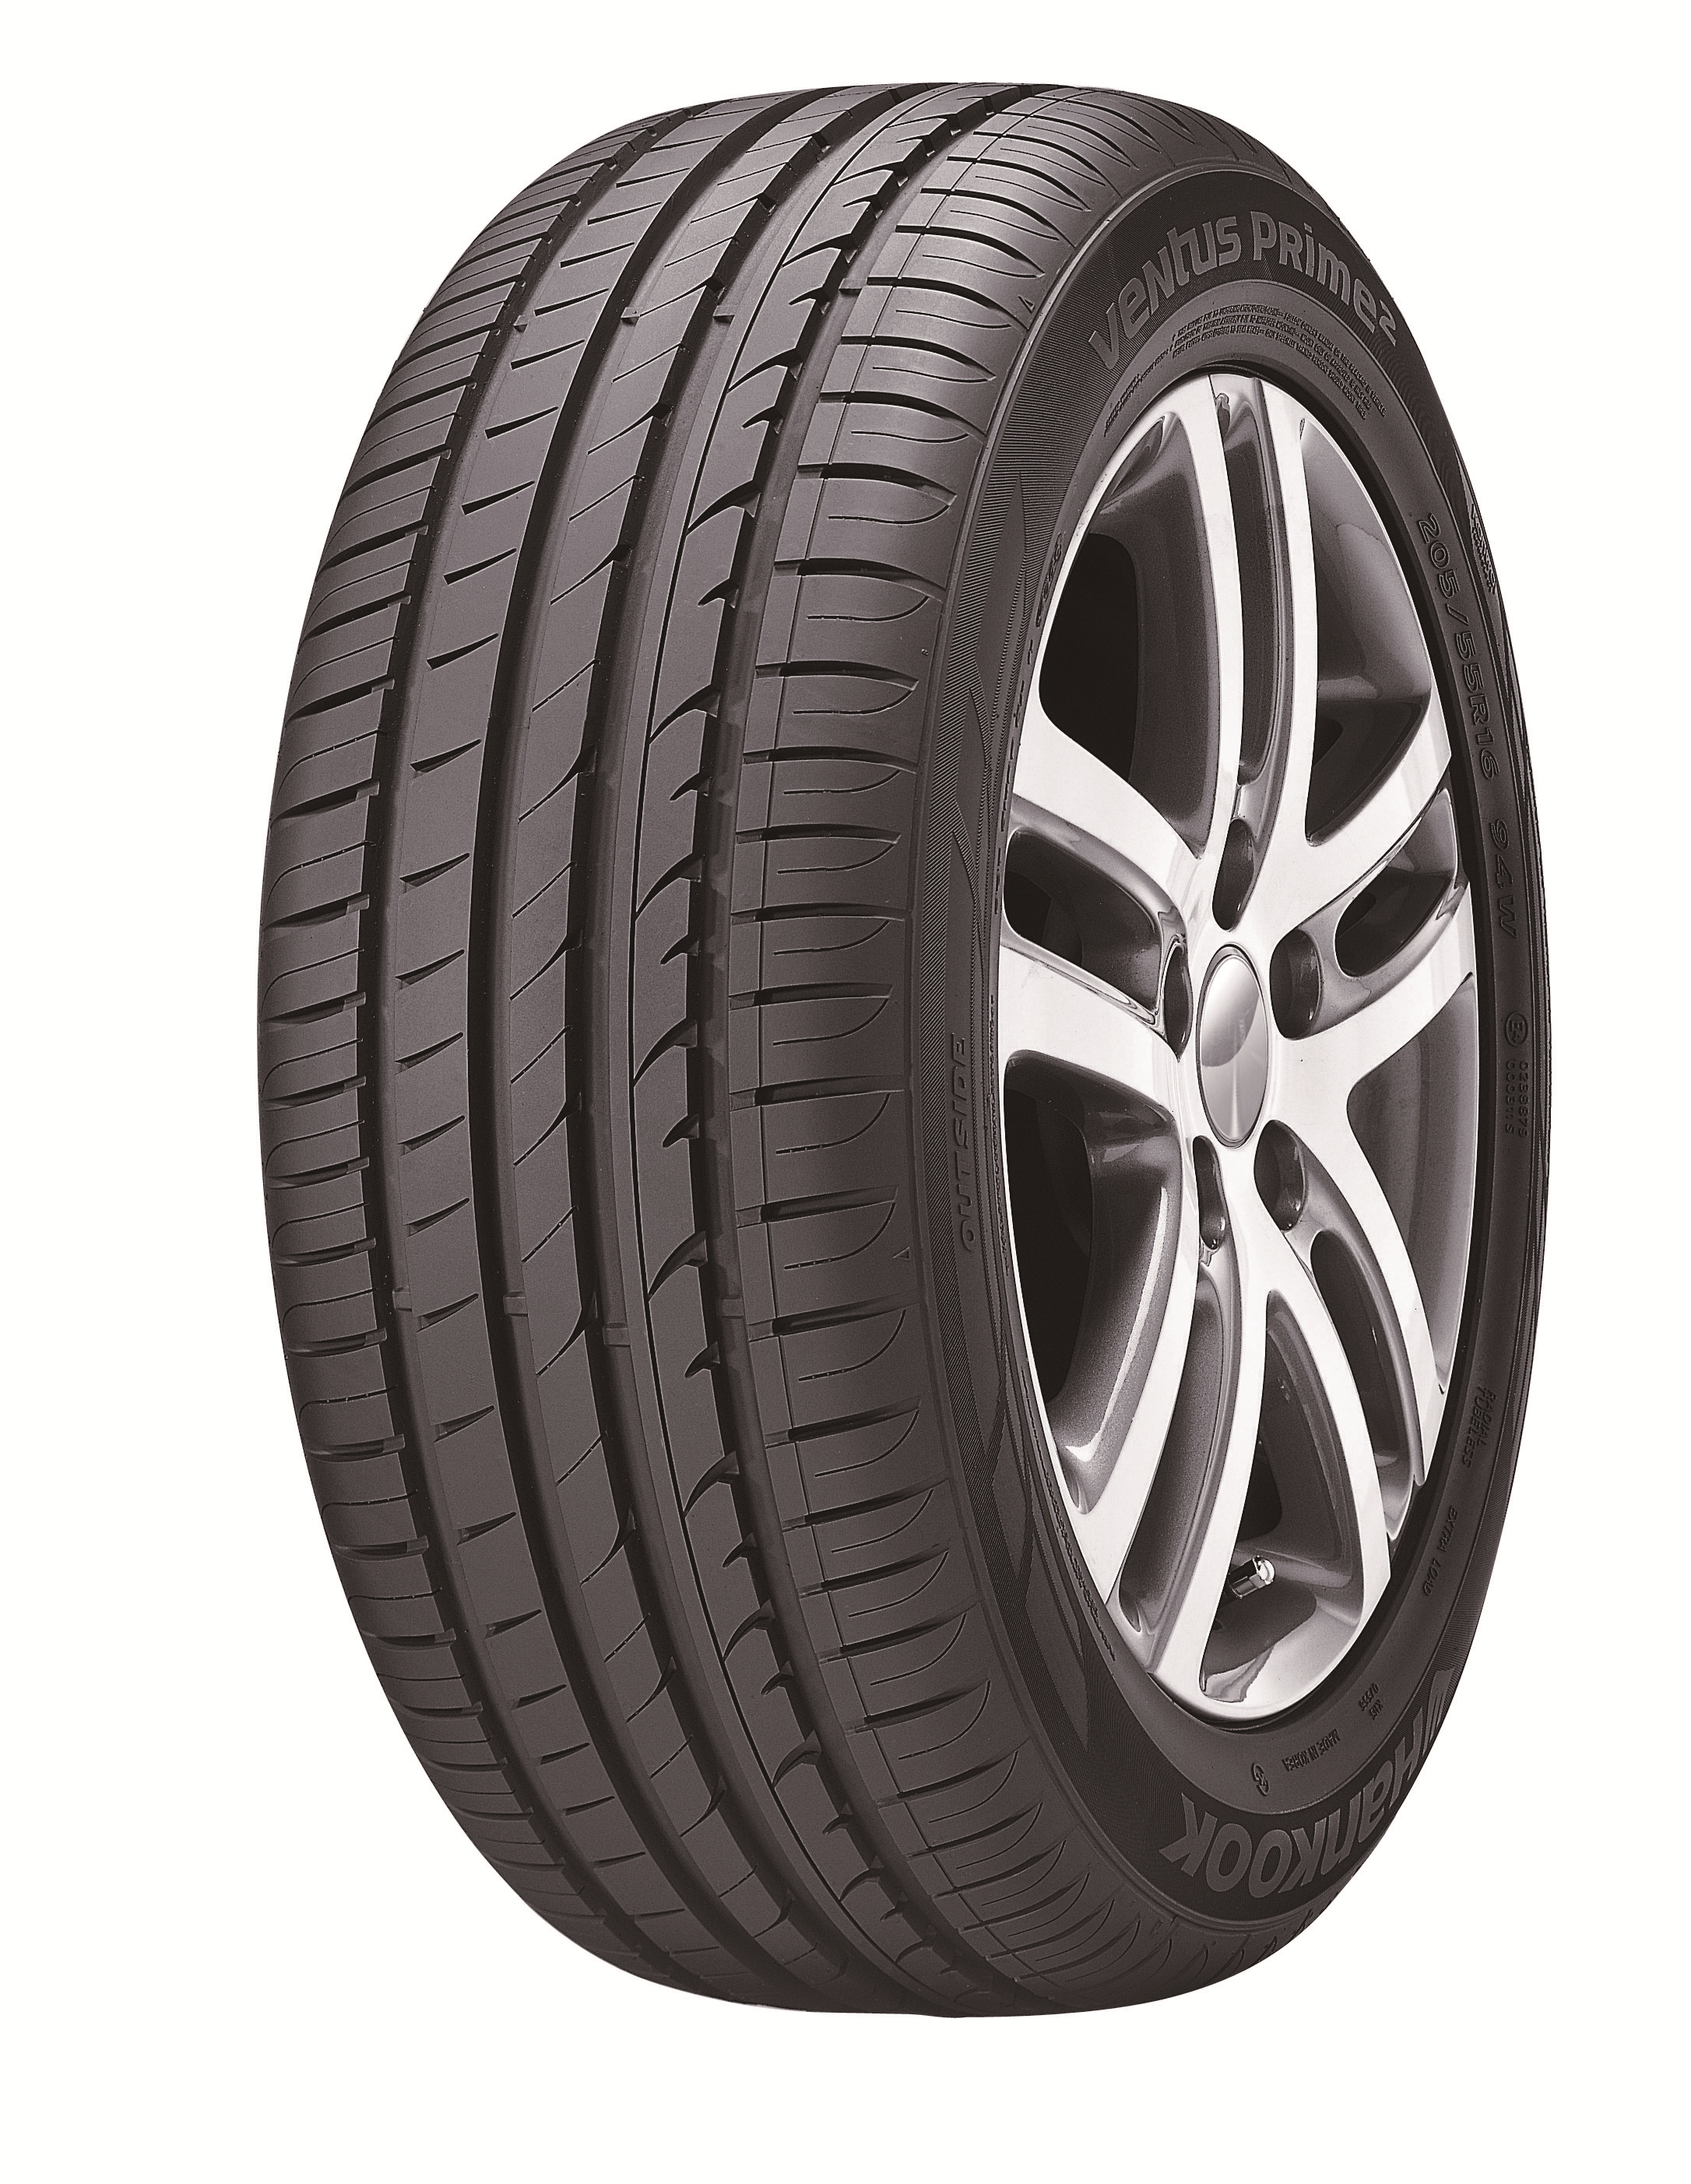 Buy Online Hyundai Tyres Manchester At Cheap Price From Gilgal Tyres We Offer A Wide Range Of Hyundai Car Tyres In Manchester Uk Hyundai Hyundai Cars Tire